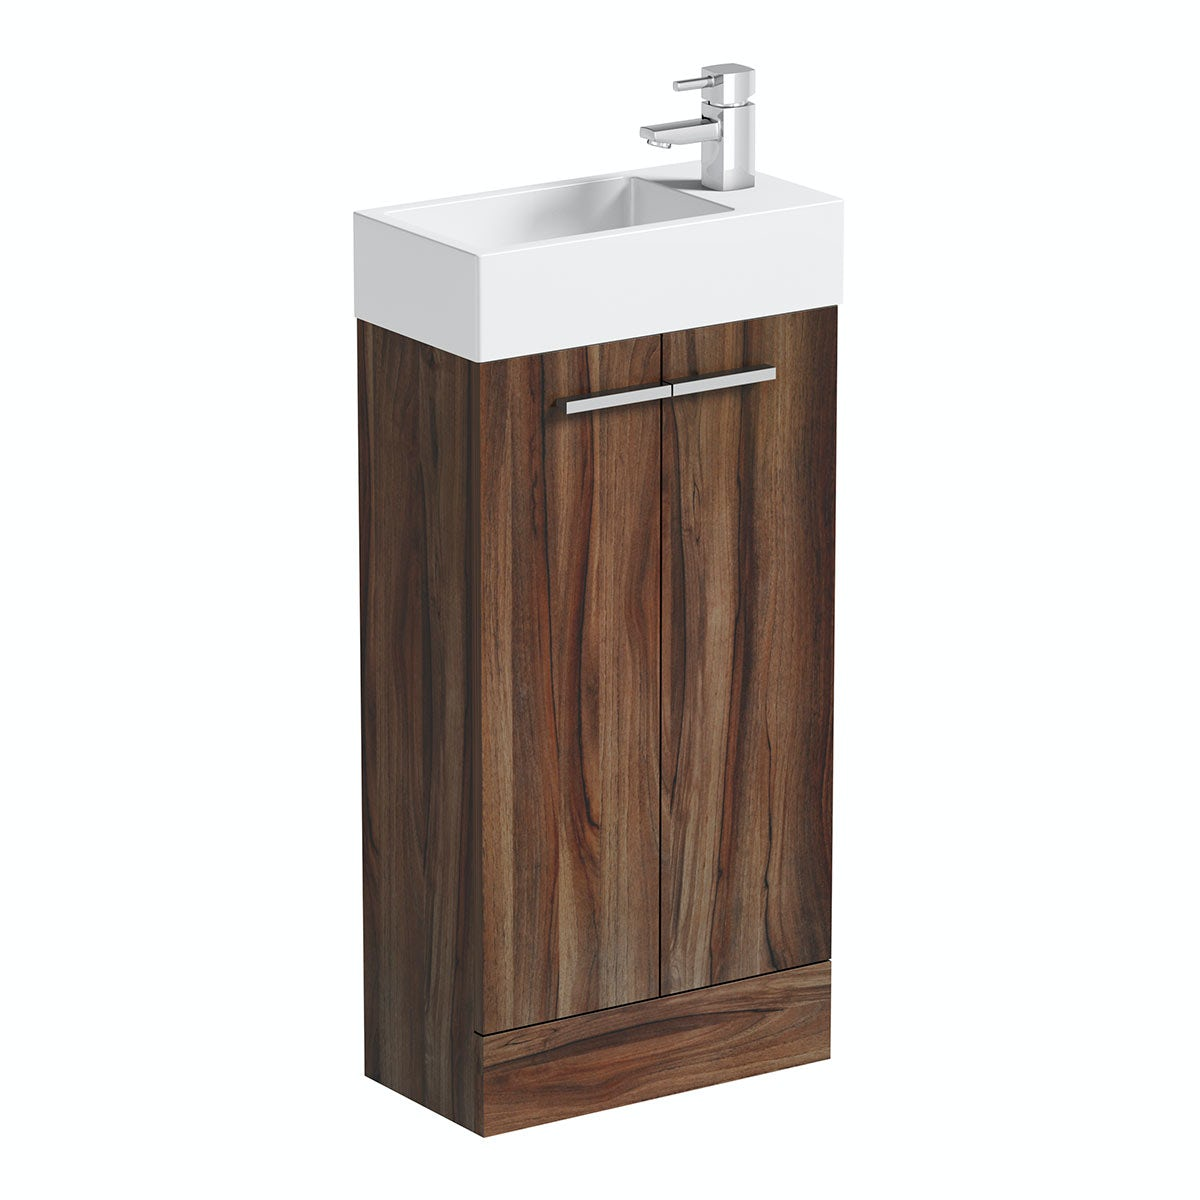 Bathroom sinks and vanity units - Walnut Cloakroom Unit With Resin Basin 410mm Orchard Bathrooms Logo